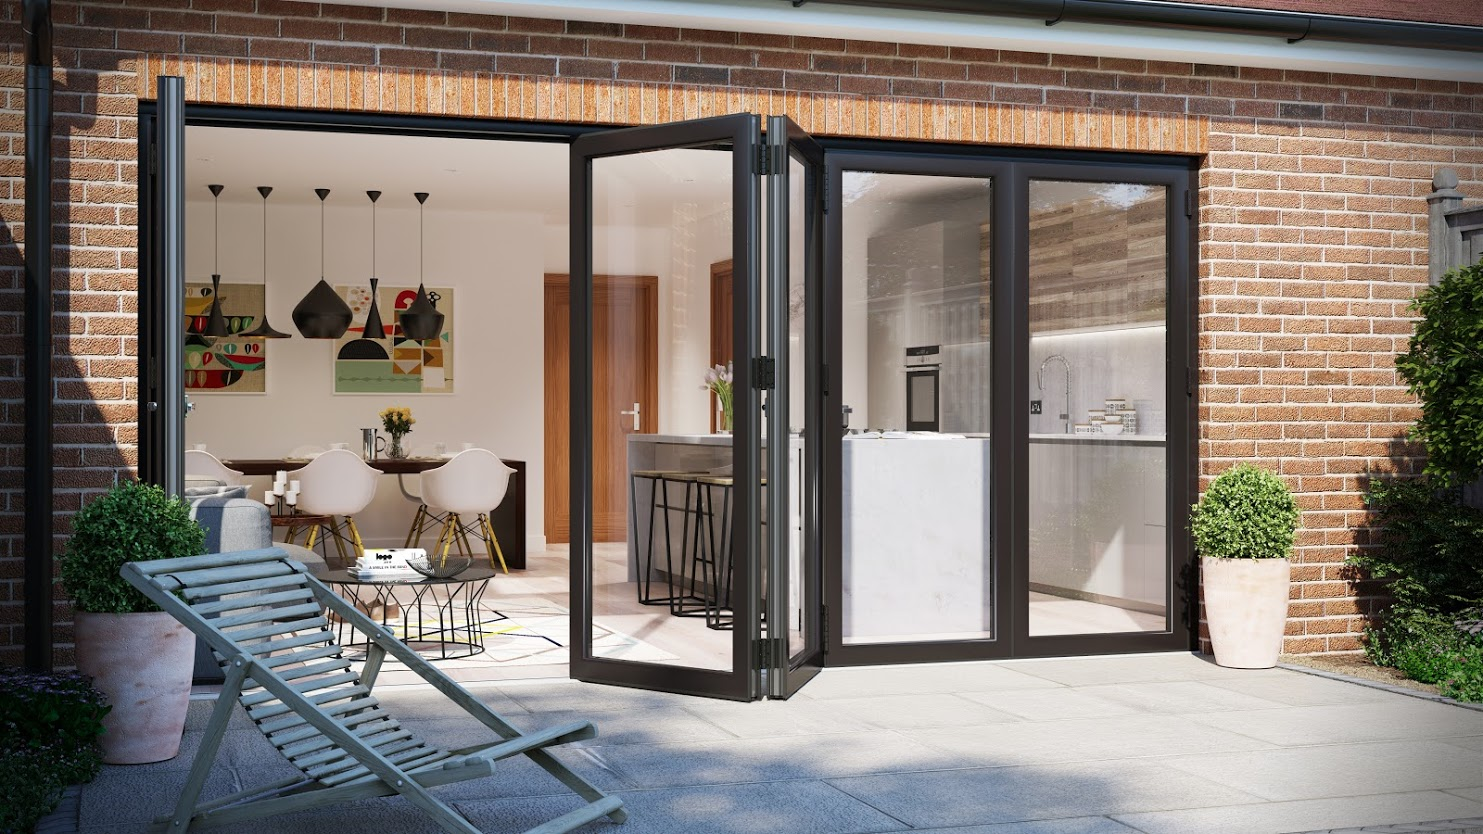 Creating a Seamless Indoor-Outdoor Transition Between ... on Seamless Indoor Outdoor Living id=46163